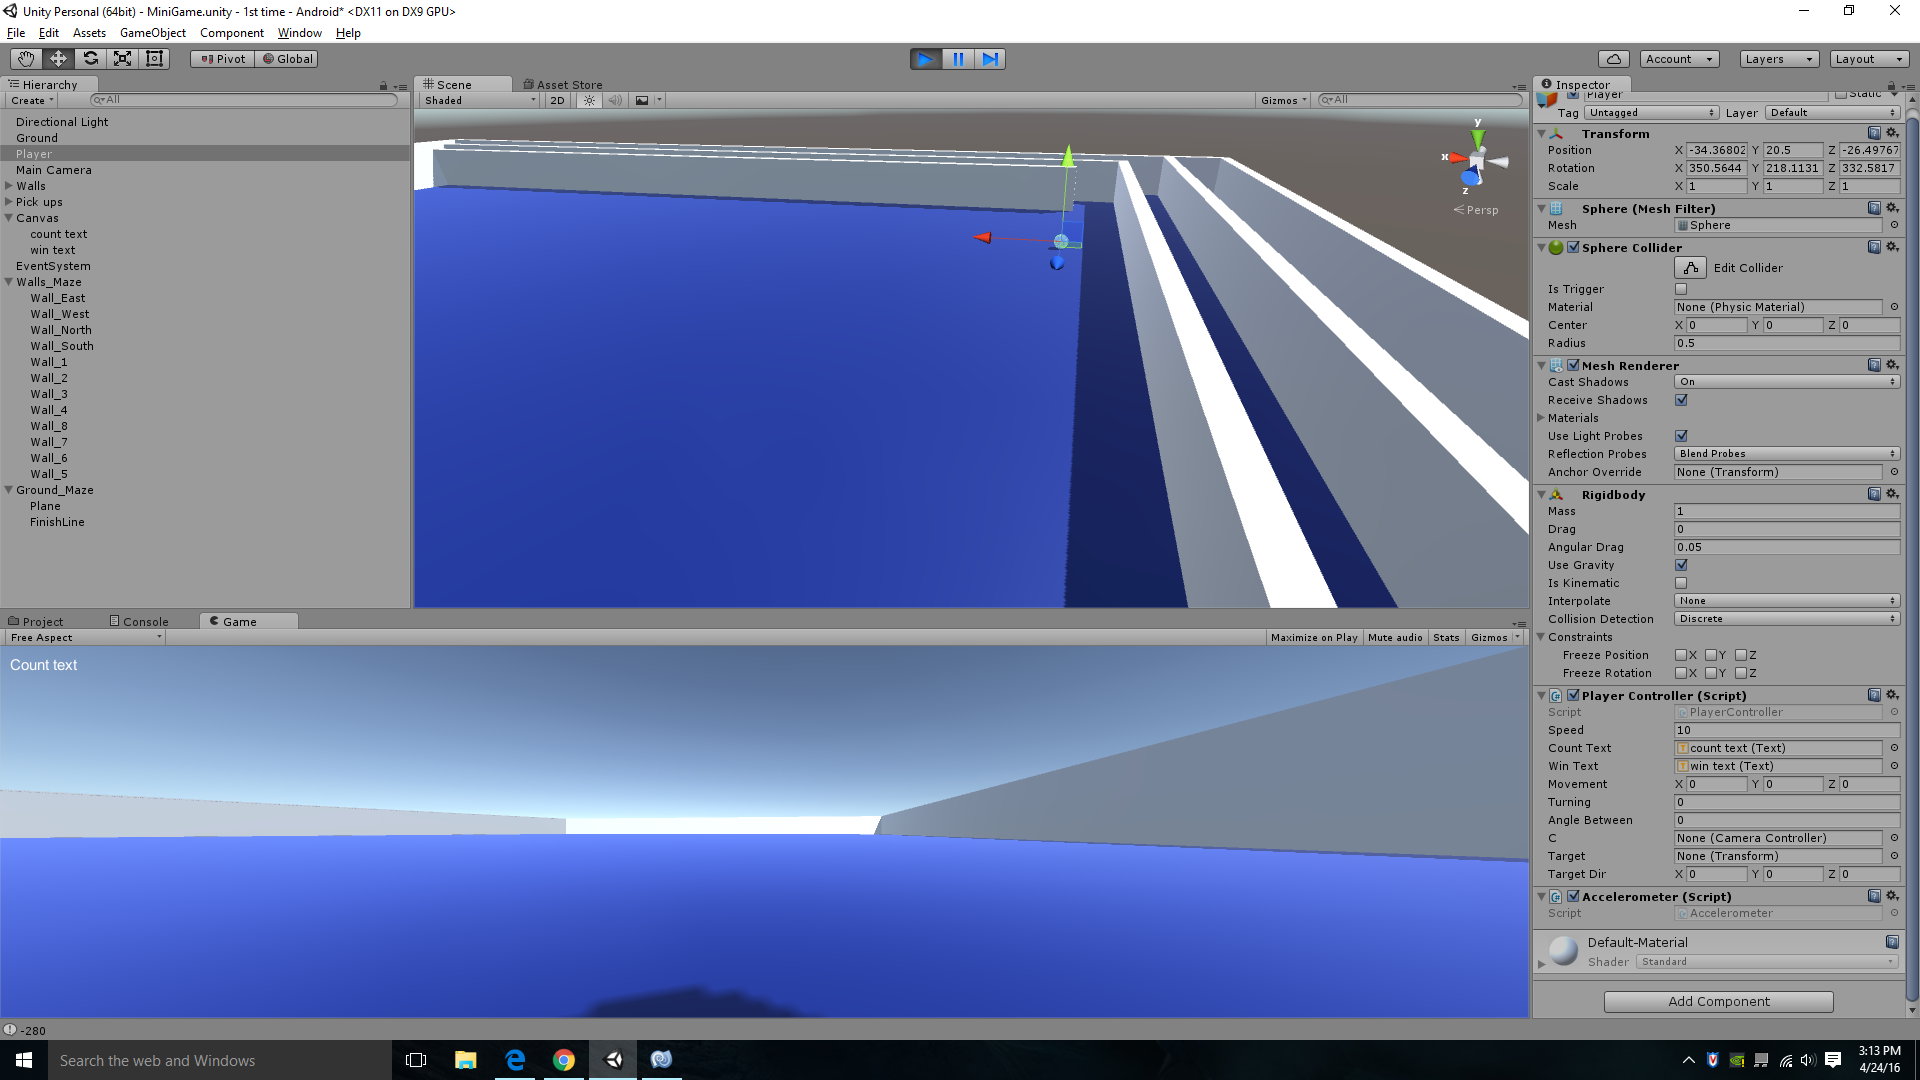 How to move the Rigid body with respect to the camera angle